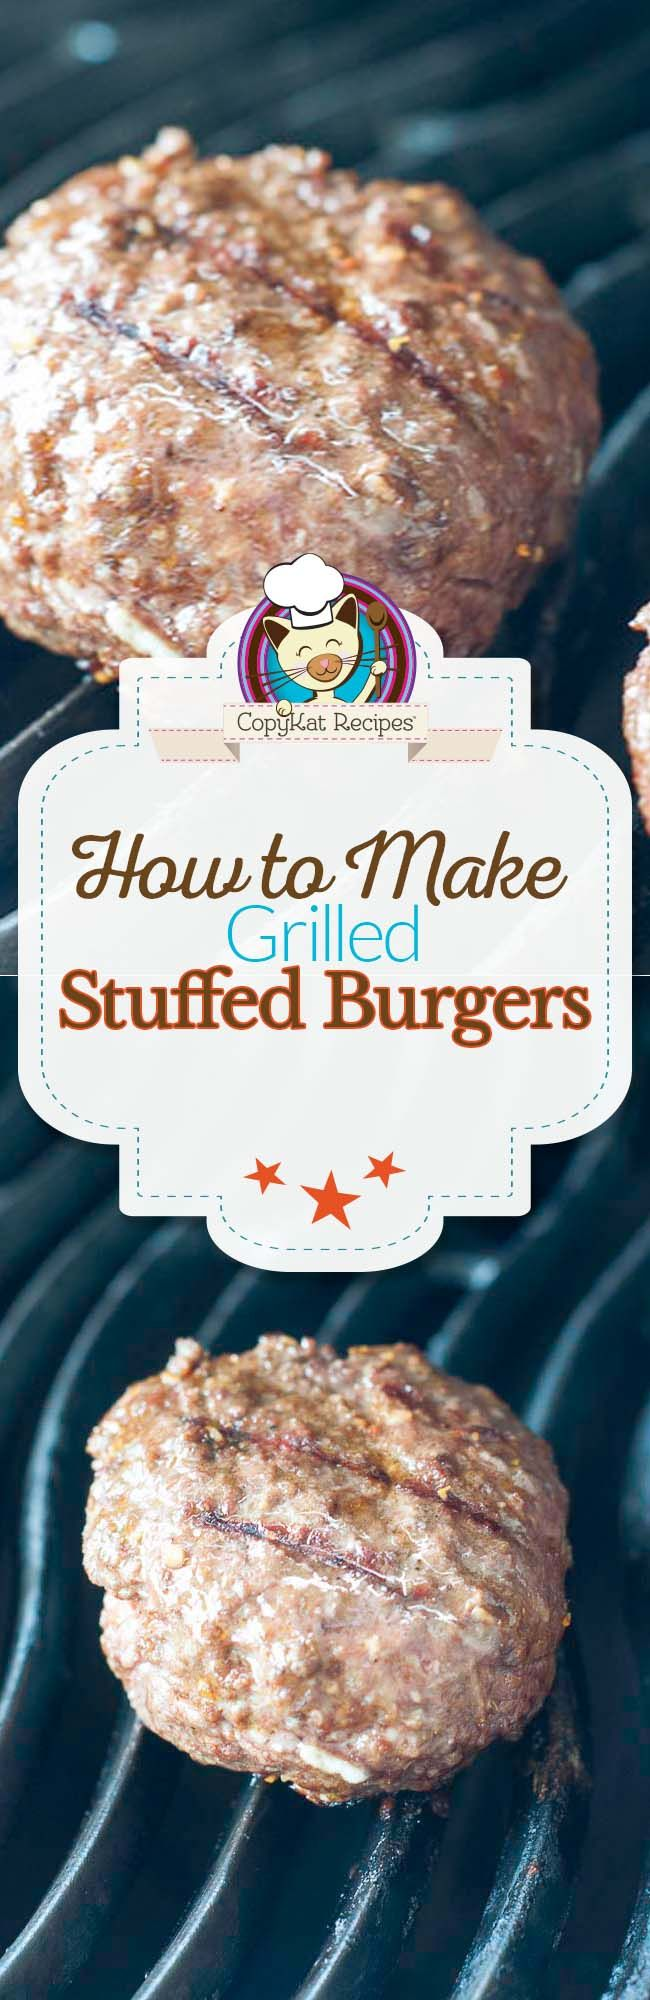 1000+ images about [Best Grilling Recipes] on Pinterest | Grilled ...